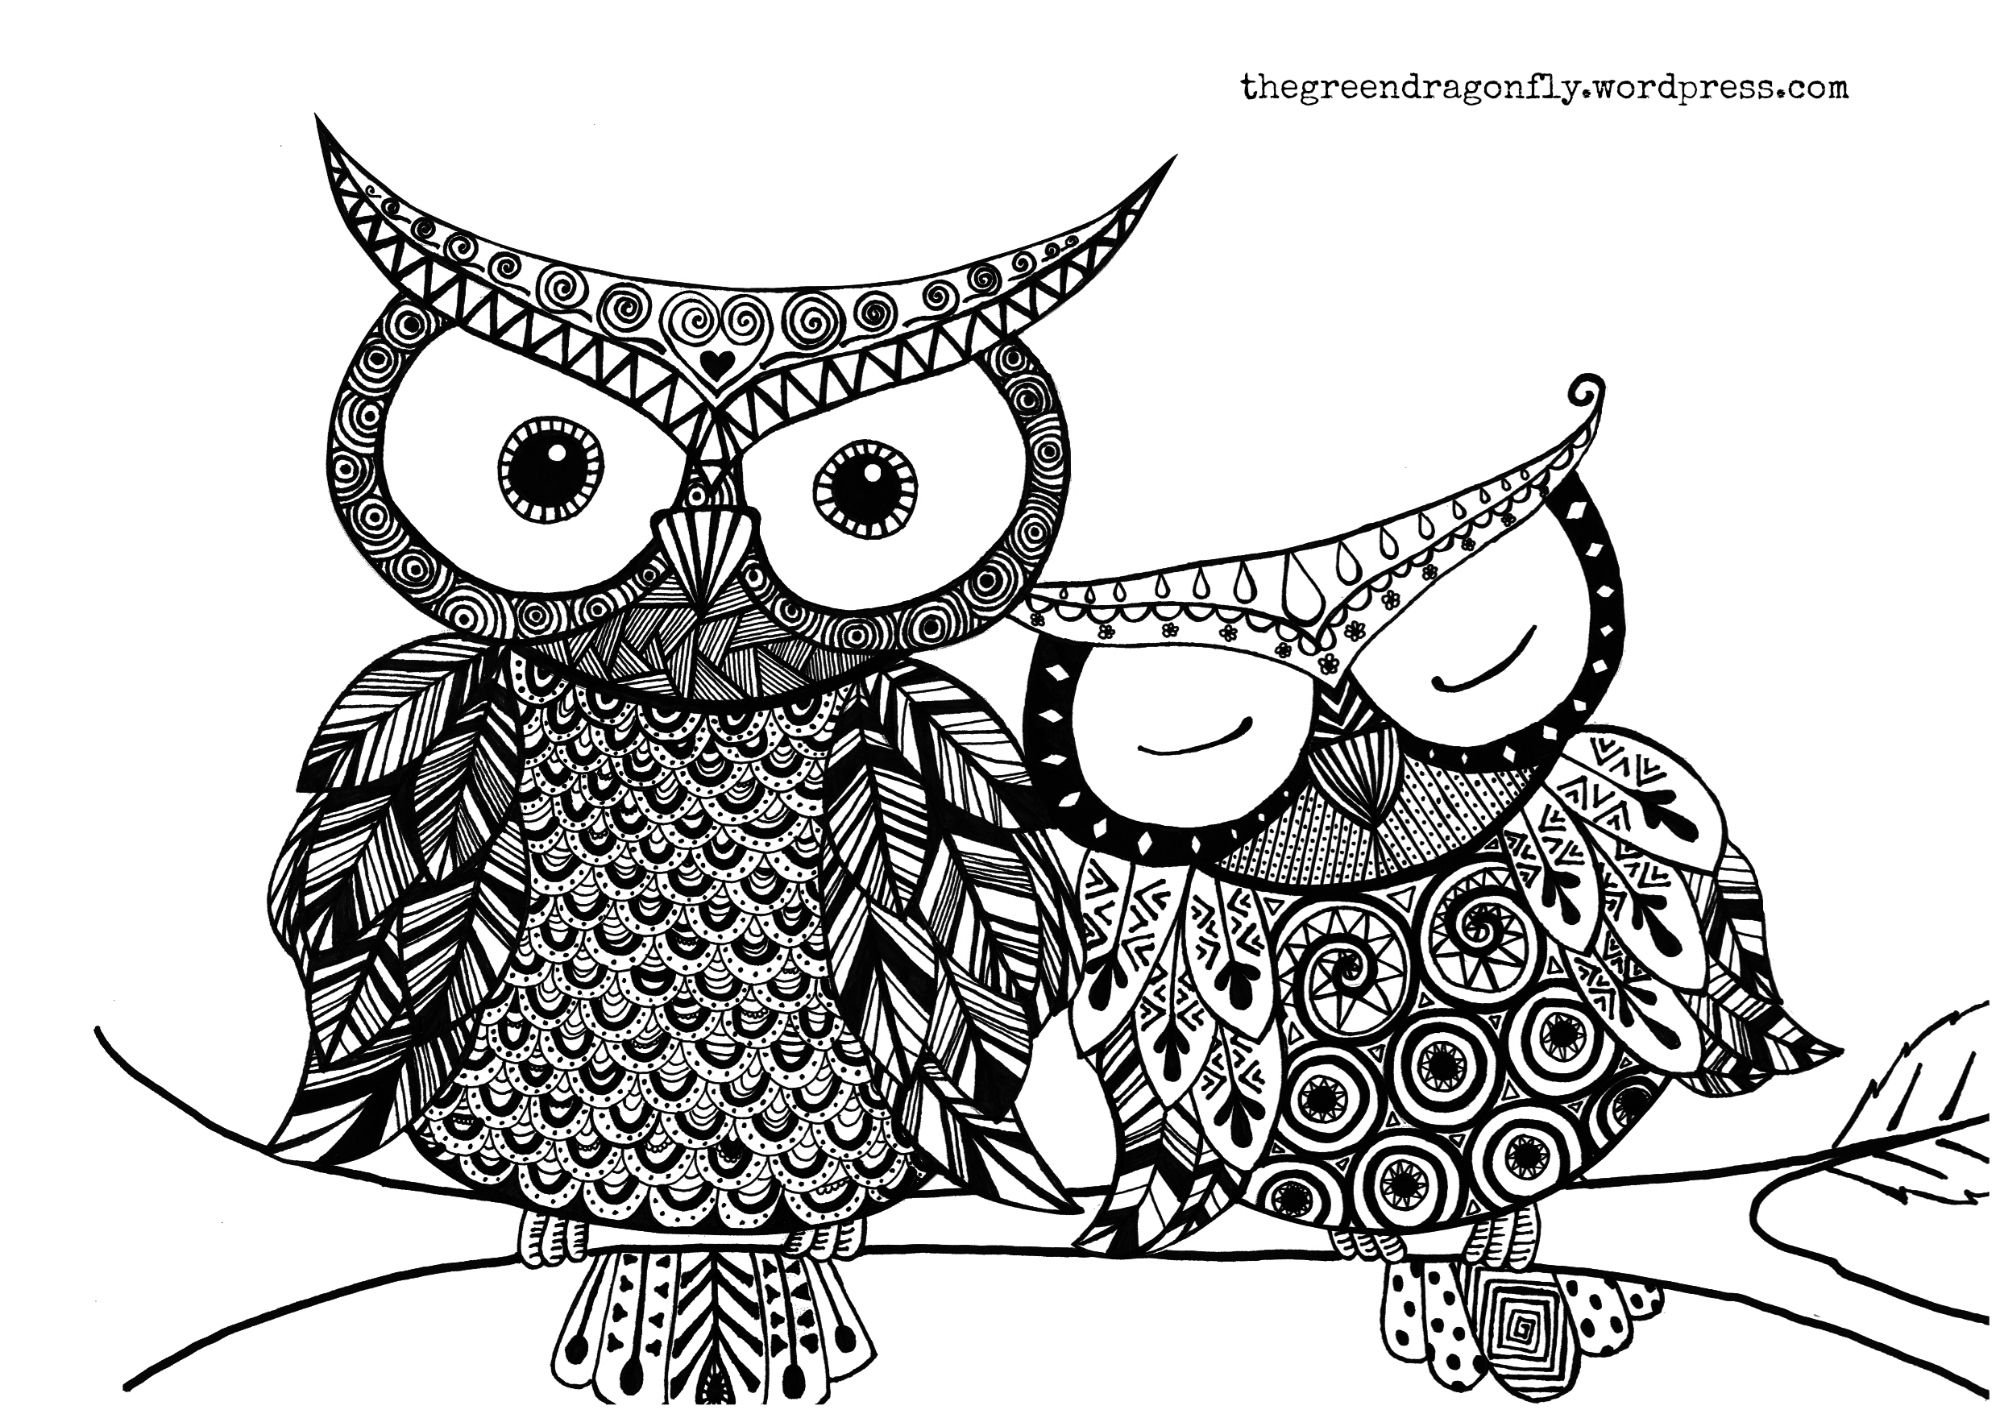 Owl coloring pages free - Explore Owl Coloring Pages And More